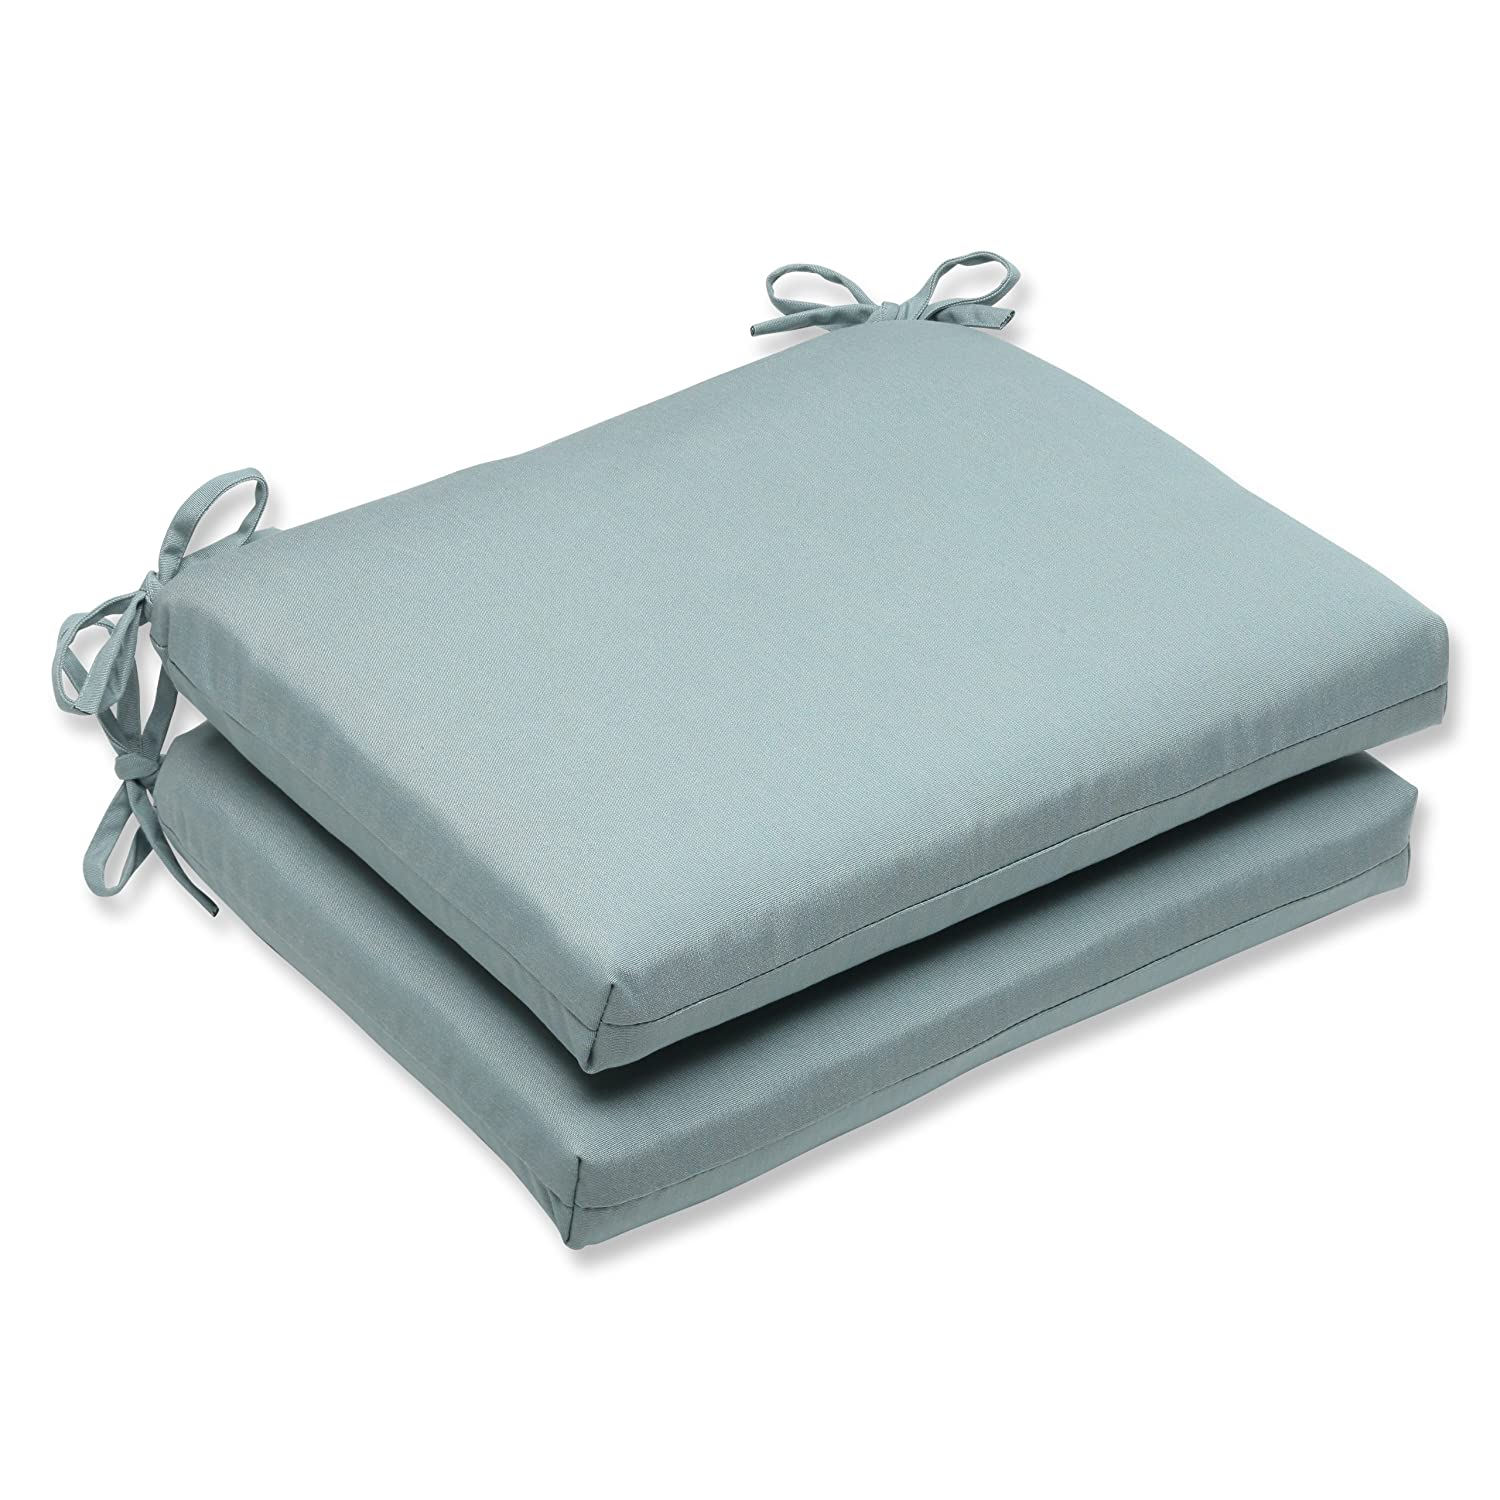 Pillow Perfect Indoor Outdoor Squared Corners Seat Cushion with Sunbrella Canvas Spa Fabric, Set of 2, 18.5 in. L X 16 in. W X 3 in. D, Blue